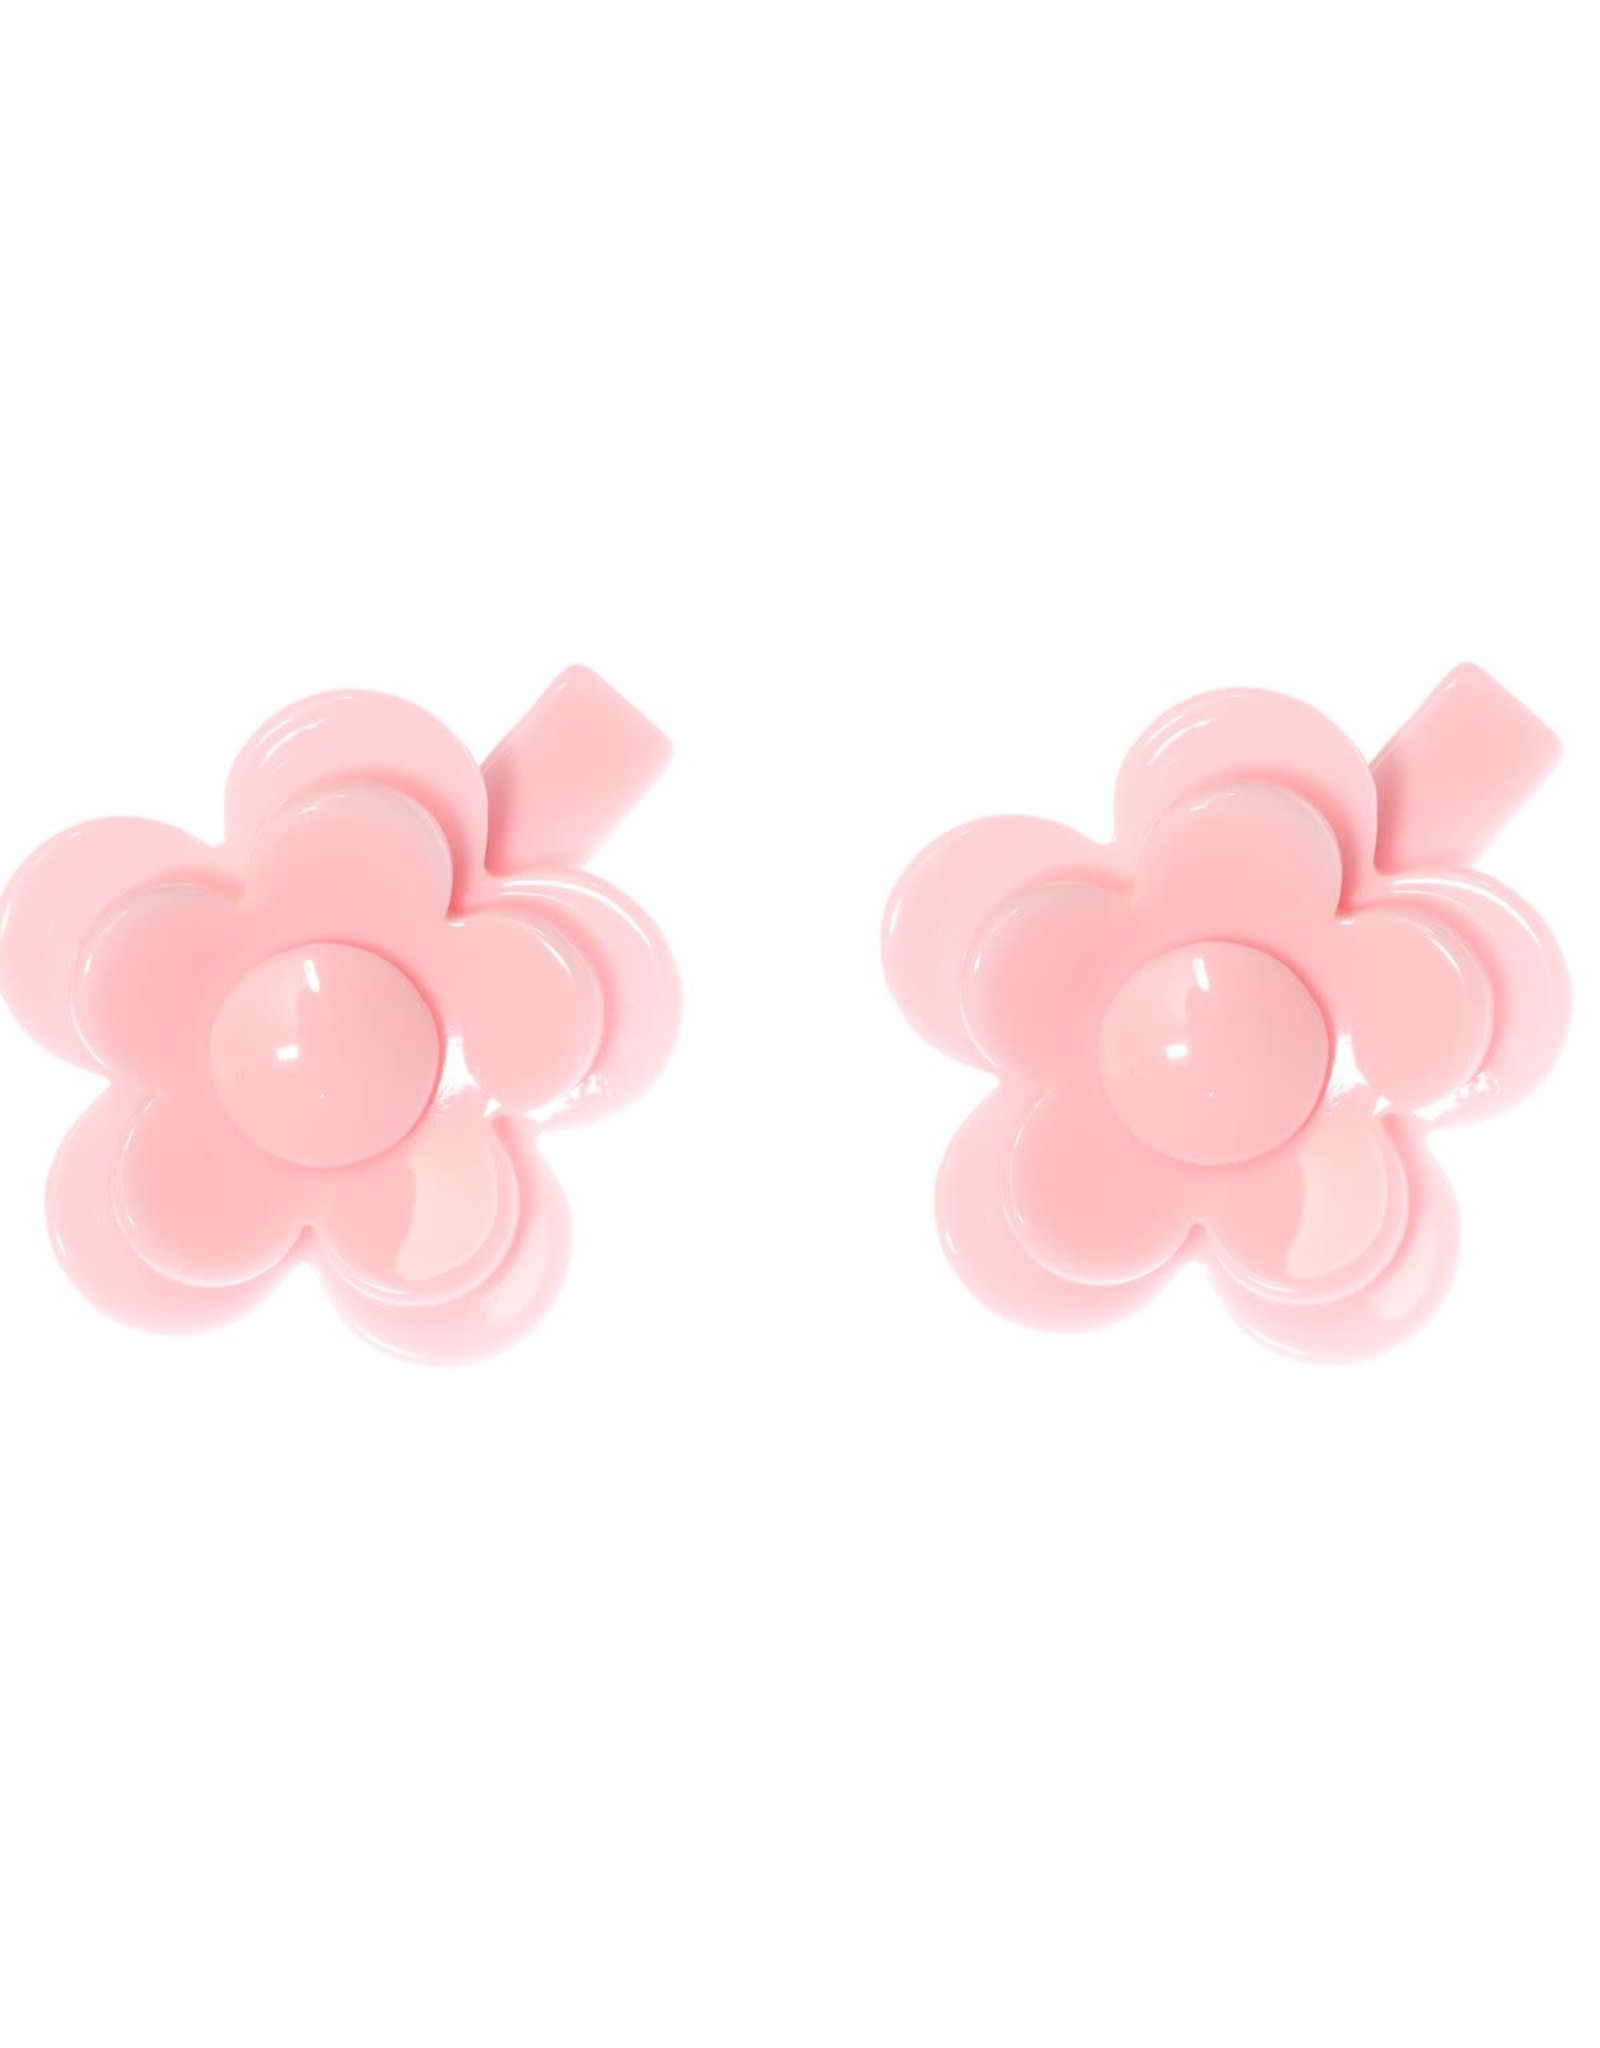 Lilies & Roses camelia flower hairclips- blush